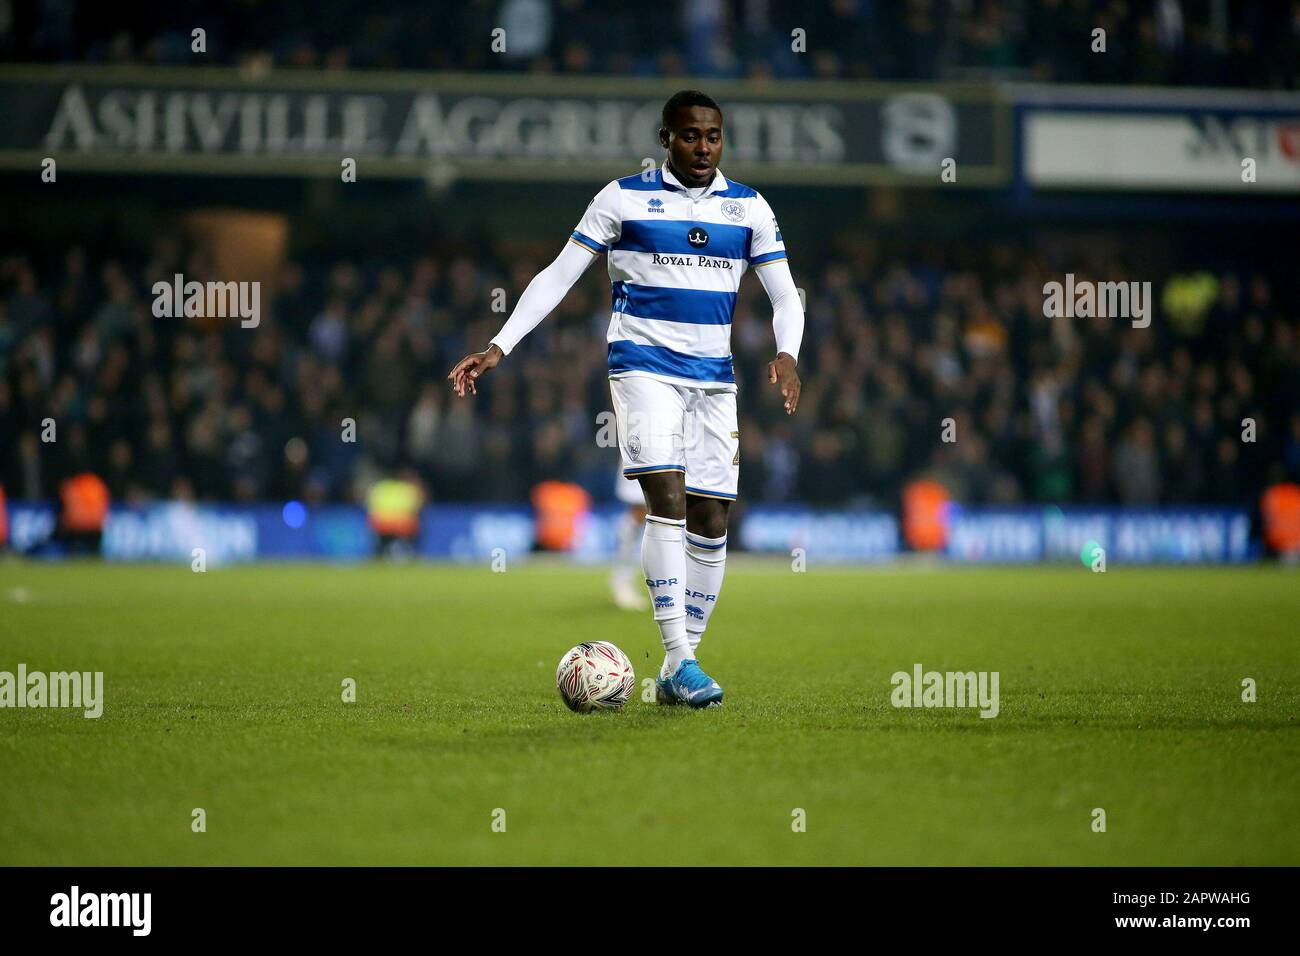 London, UK. 24th Jan, 2020. Bright Osayi-Samuel of Queens Park Rangers in action during The Emirates FA Cup, 4th round match, Queens Park Rangers v Sheffield Wednesday at The Kiyan Prince Foundation Stadium, Loftus Road in London on Friday 24th January 2020. this image may only be used for Editorial purposes. Editorial use only, license required for commercial use. No use in betting, games or a single club/league/player publications. pic by Tom Smeeth/Andrew Orchard sports photography/Alamy Live news Credit: Andrew Orchard sports photography/Alamy Live News Stock Photo